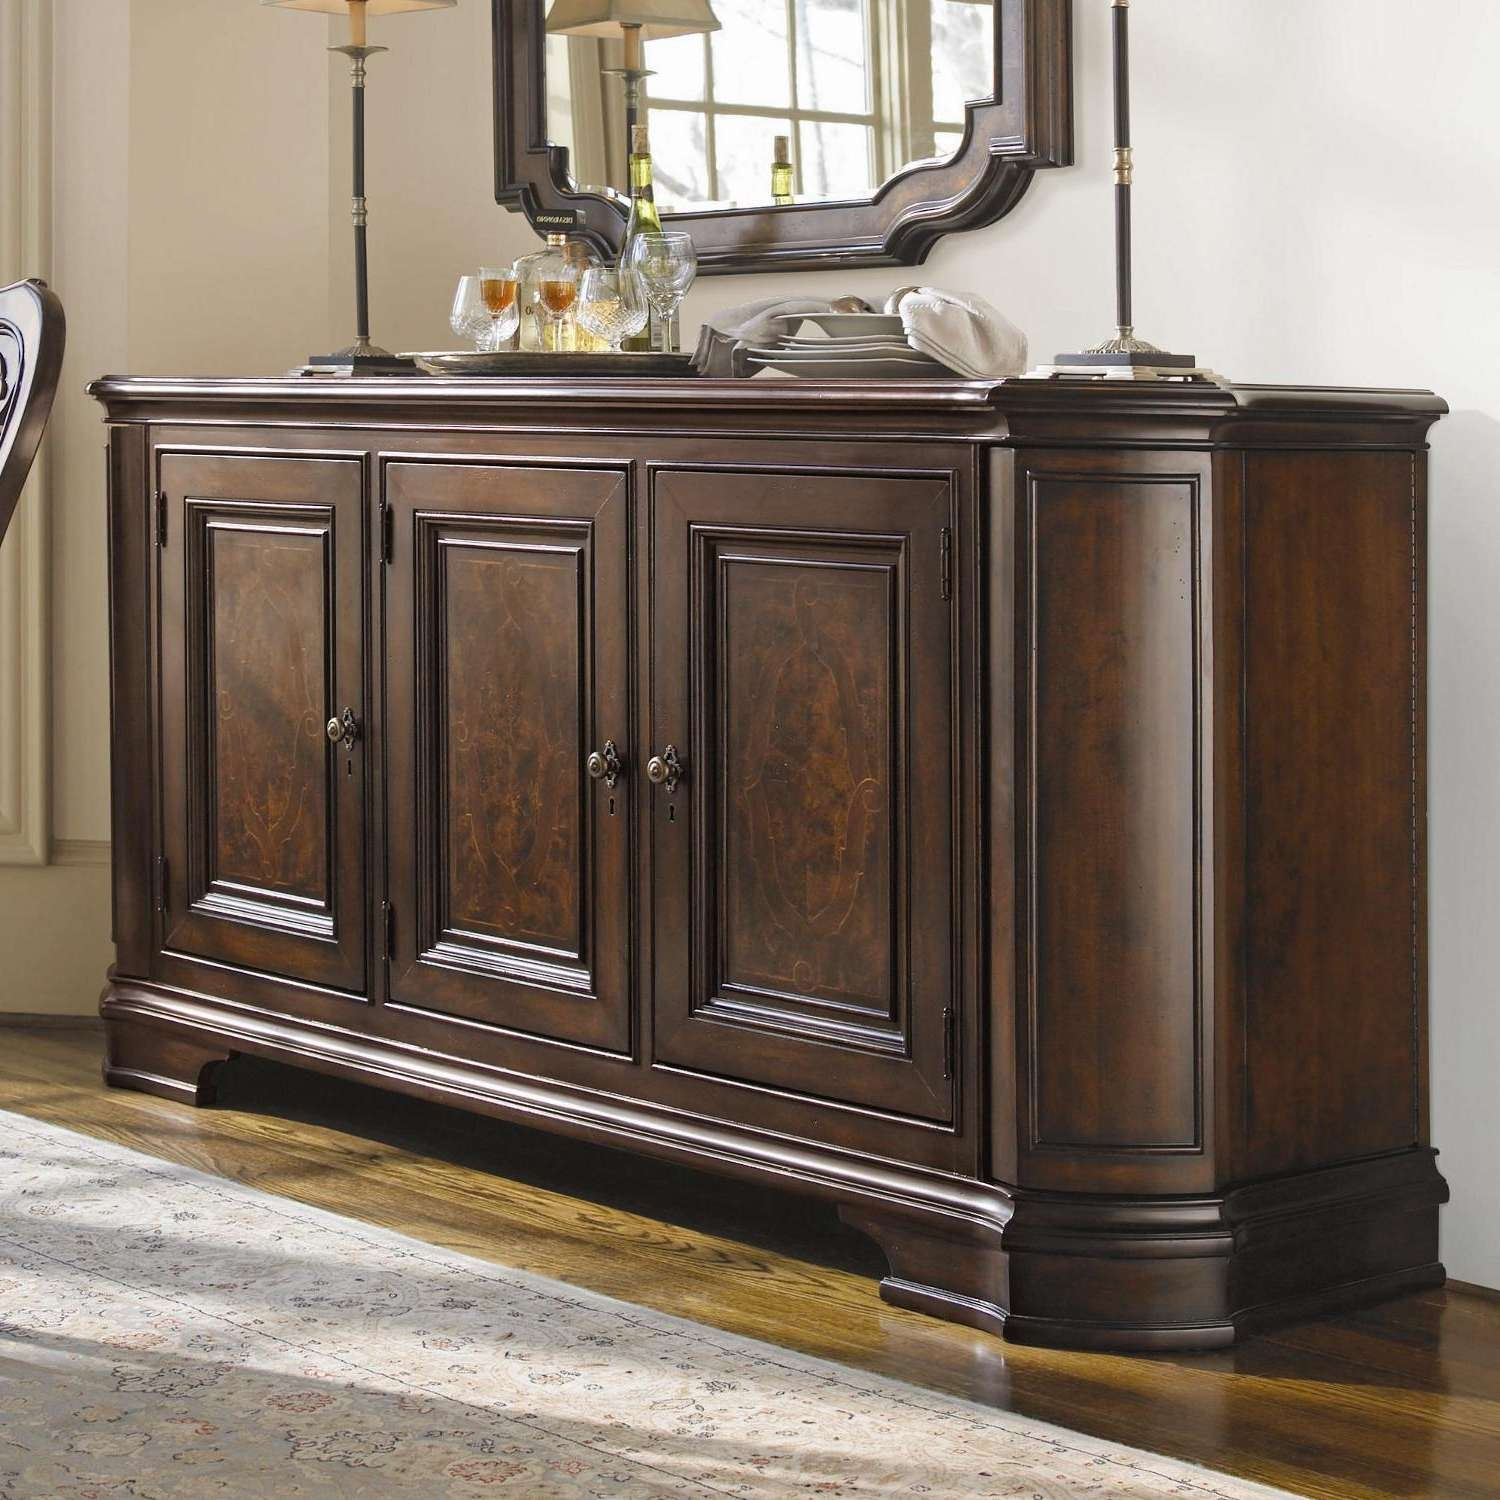 Inspirational Dining Room Sideboards And Buffets – Bjdgjy With Buffets Sideboards (View 9 of 20)